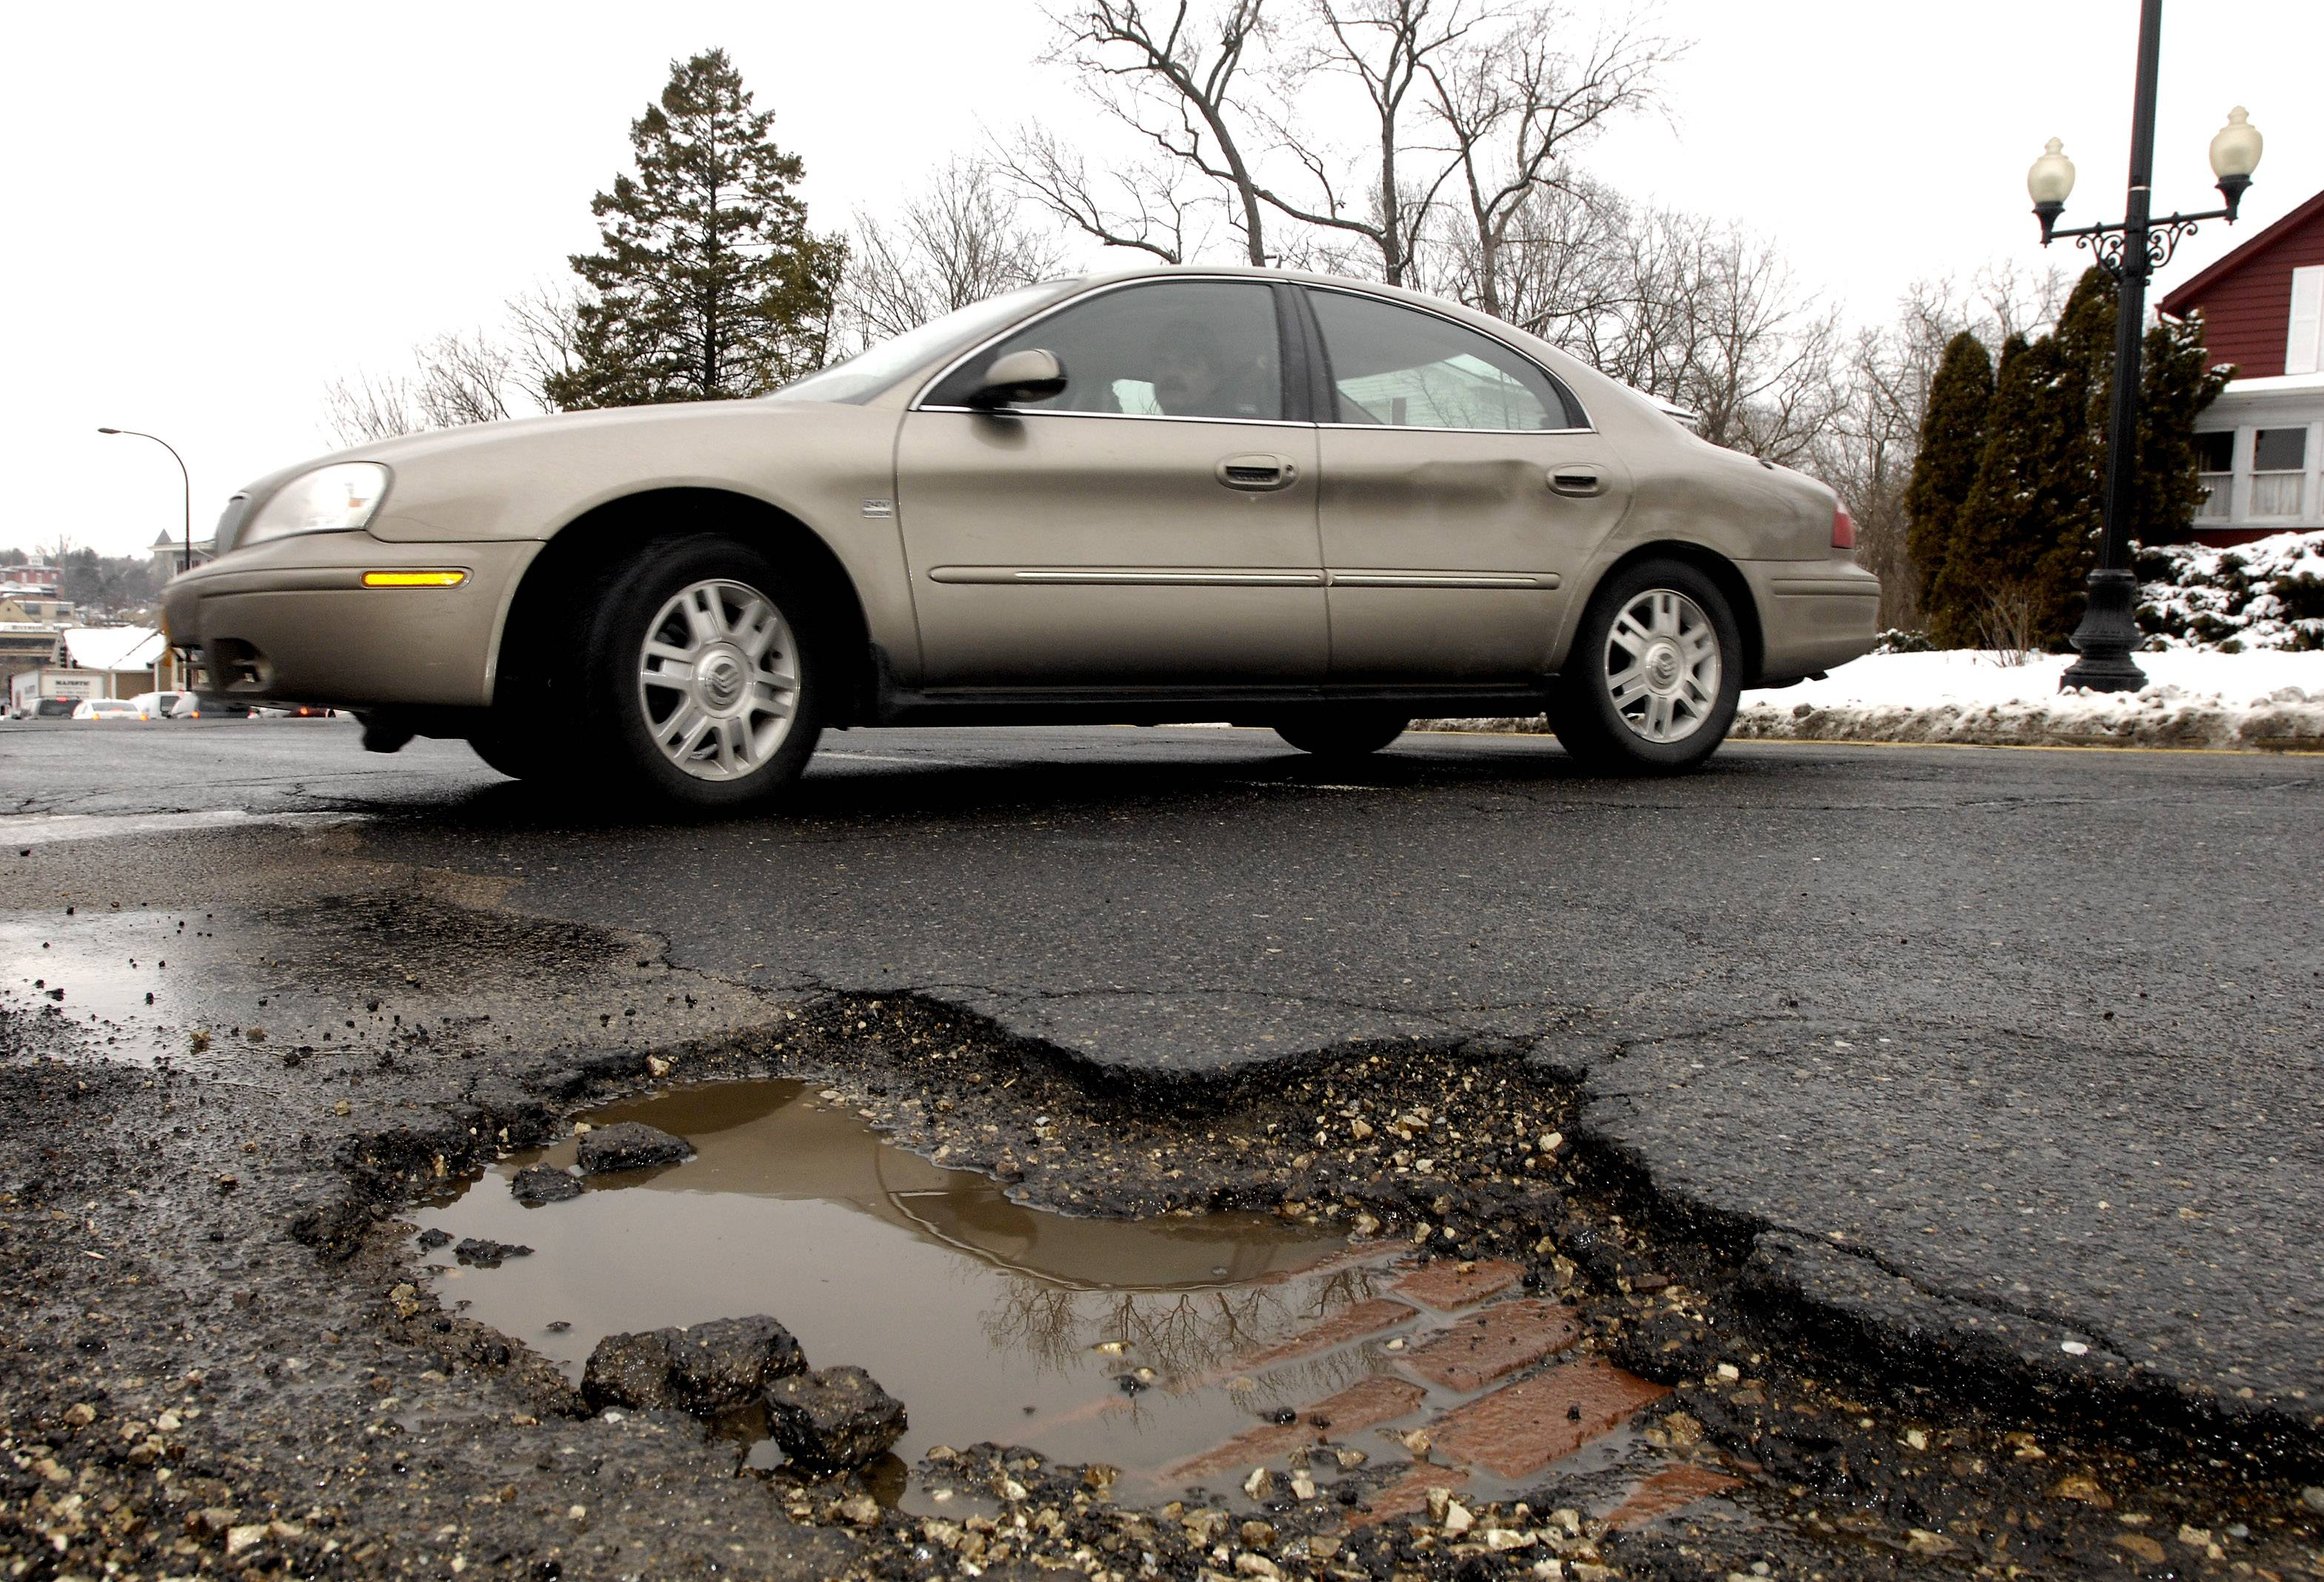 The thaw coming this weekend after the recent deep freeze is expected to cause an increase in potholes on area roads, particularly among those already in poor condition.